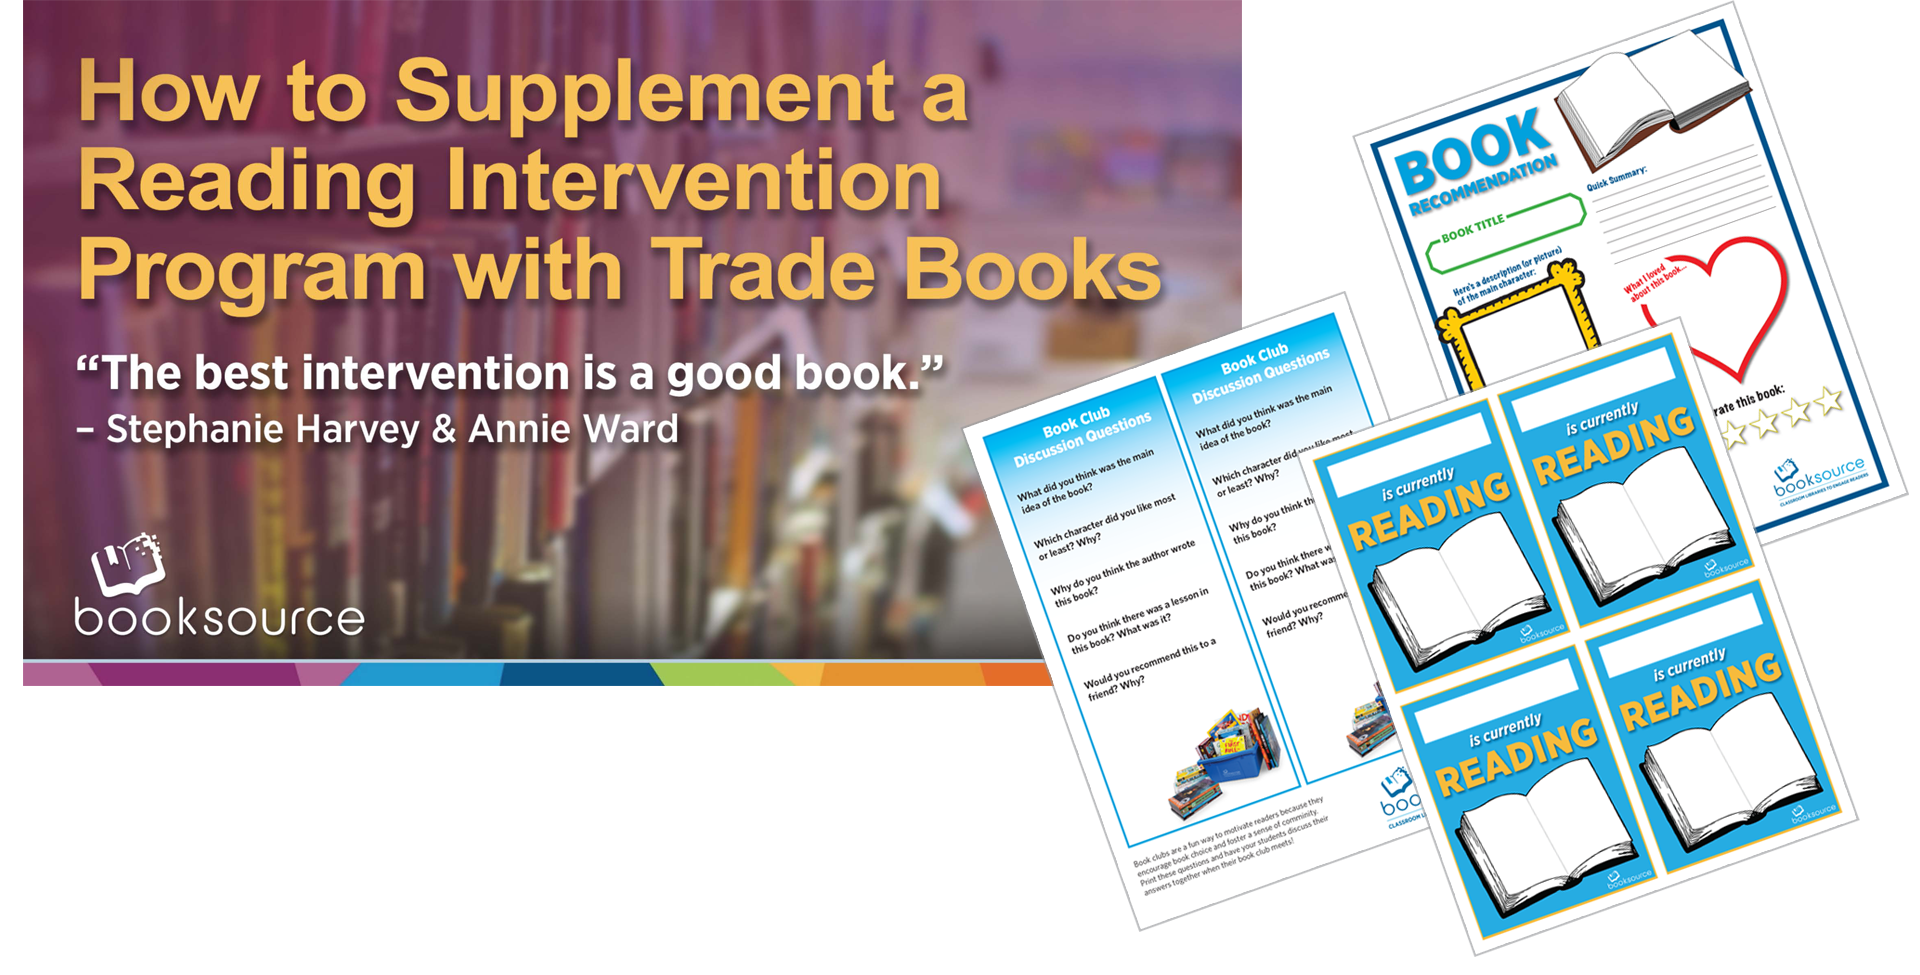 How to Supplement Your Reading Intervention Program with Trade Books